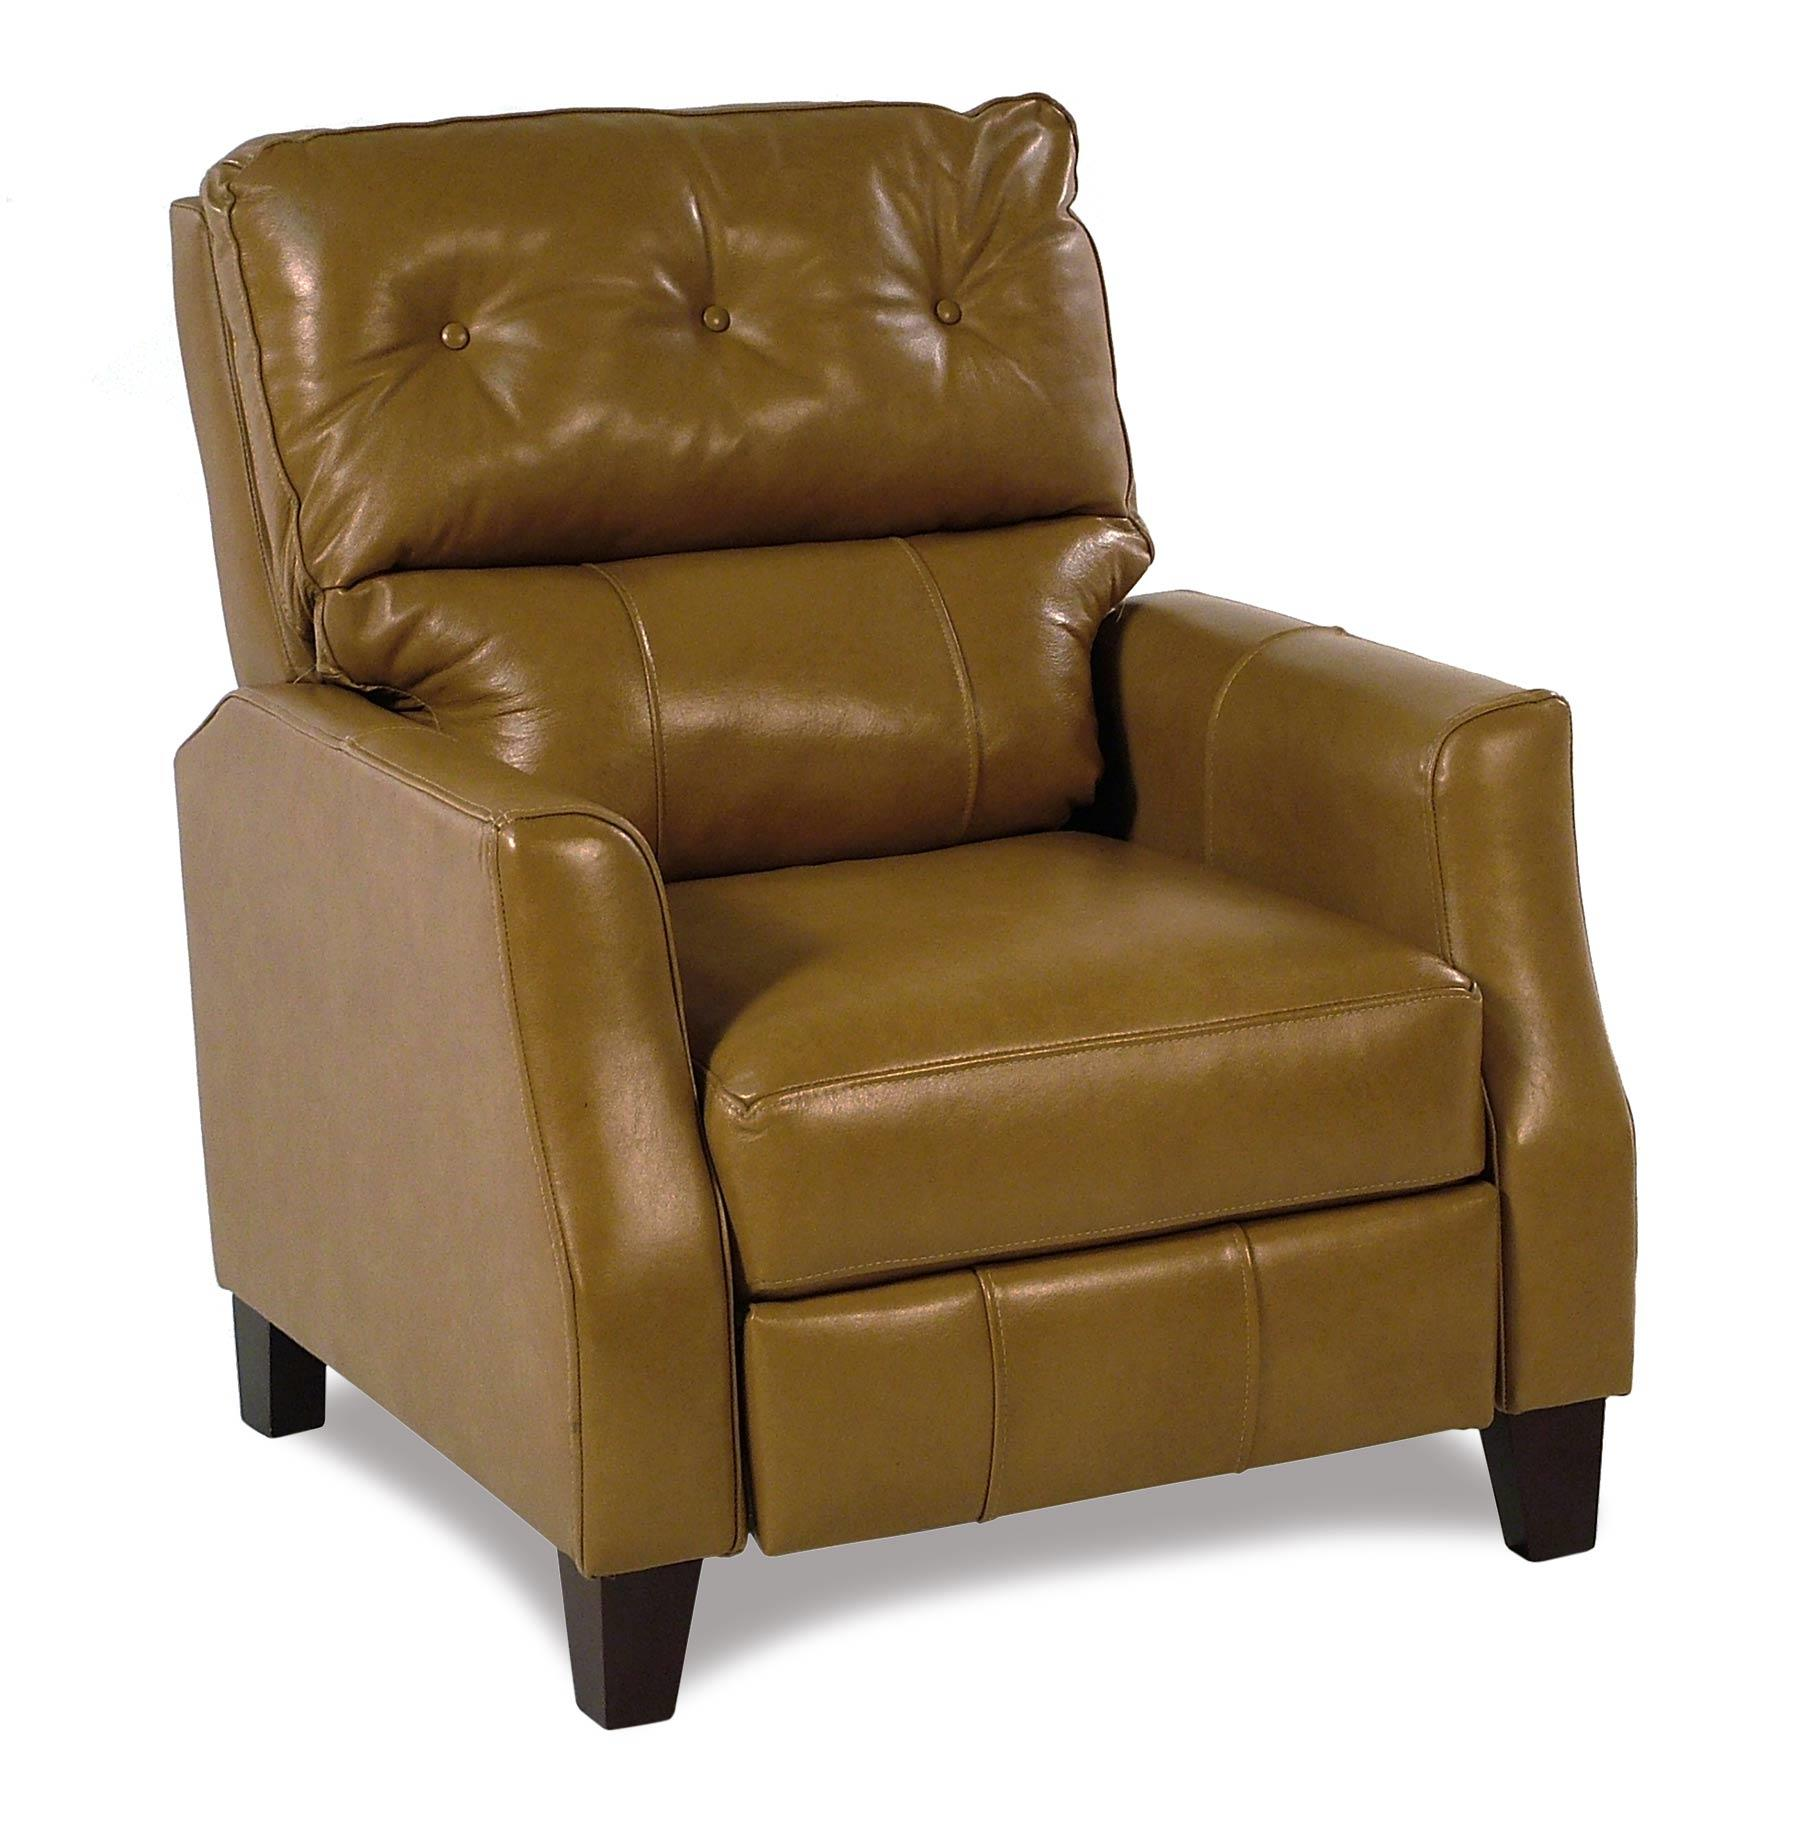 Trisha Yearwood Home Collection by Klaussner Twilight Leather Power Hi-Leg Recliner - Item Number: LV51708-PHLRC